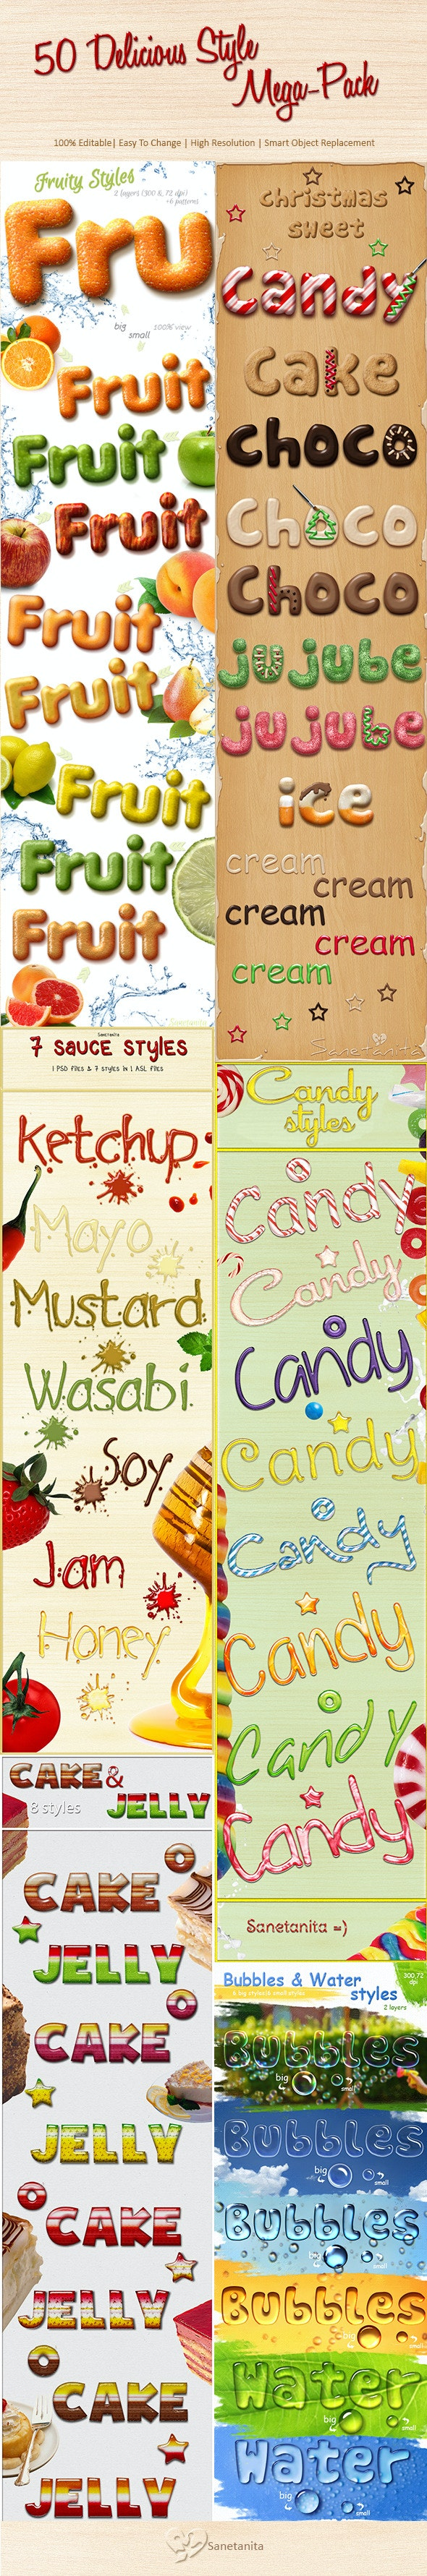 50 Delicious Style Mega-Pack!!! - Text Effects Styles